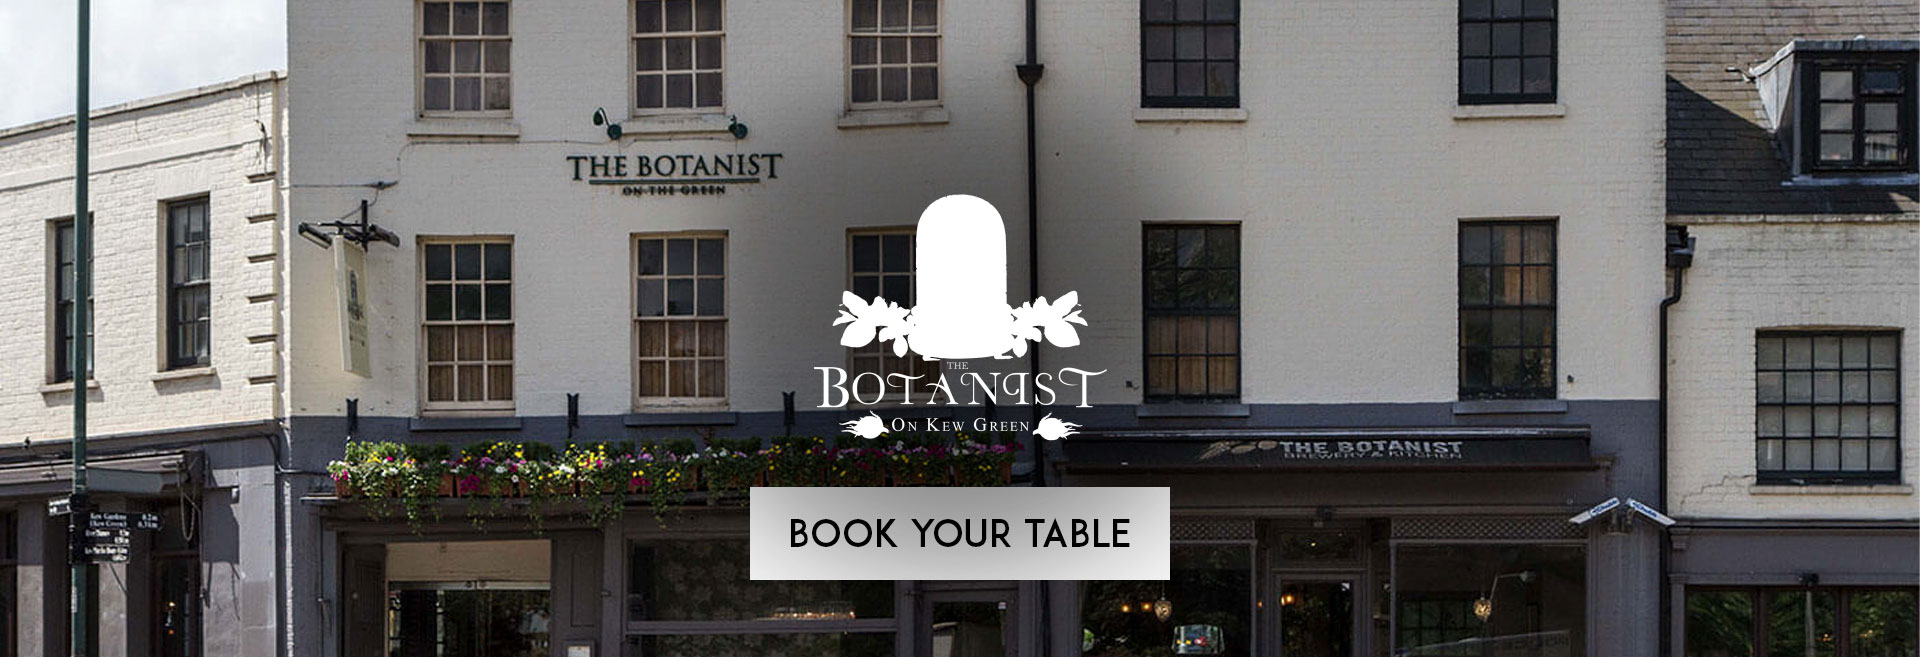 Book Your Table at The Botanist